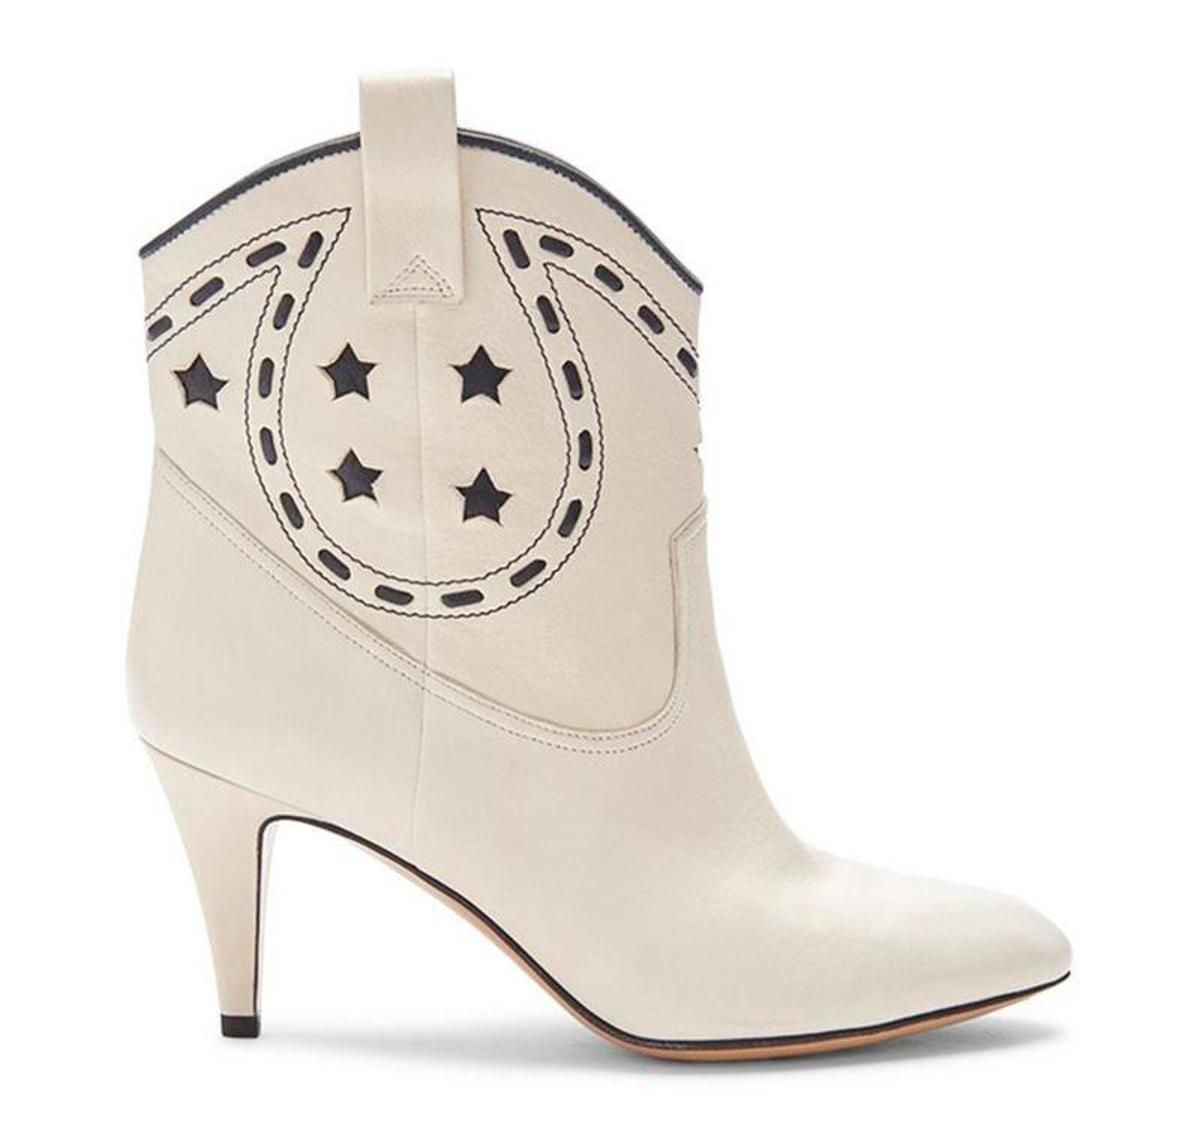 Marc Jacobs Georgia Cowboy Boot, $495, available at MarcJacobs.com..